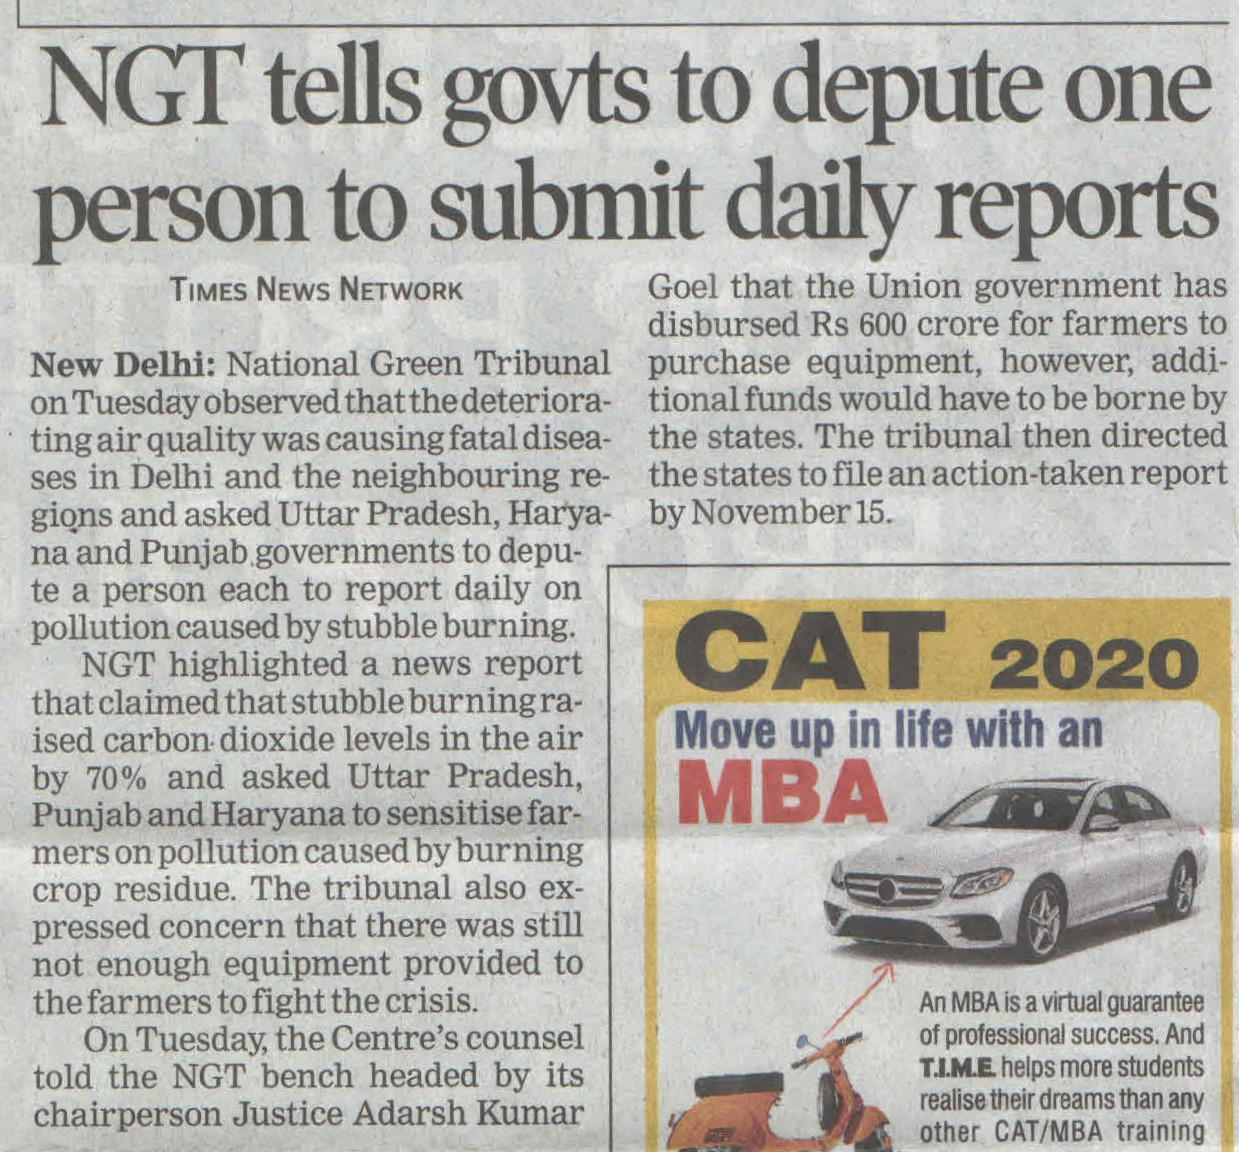 NGT tells govts to depute one person to submit daily reports